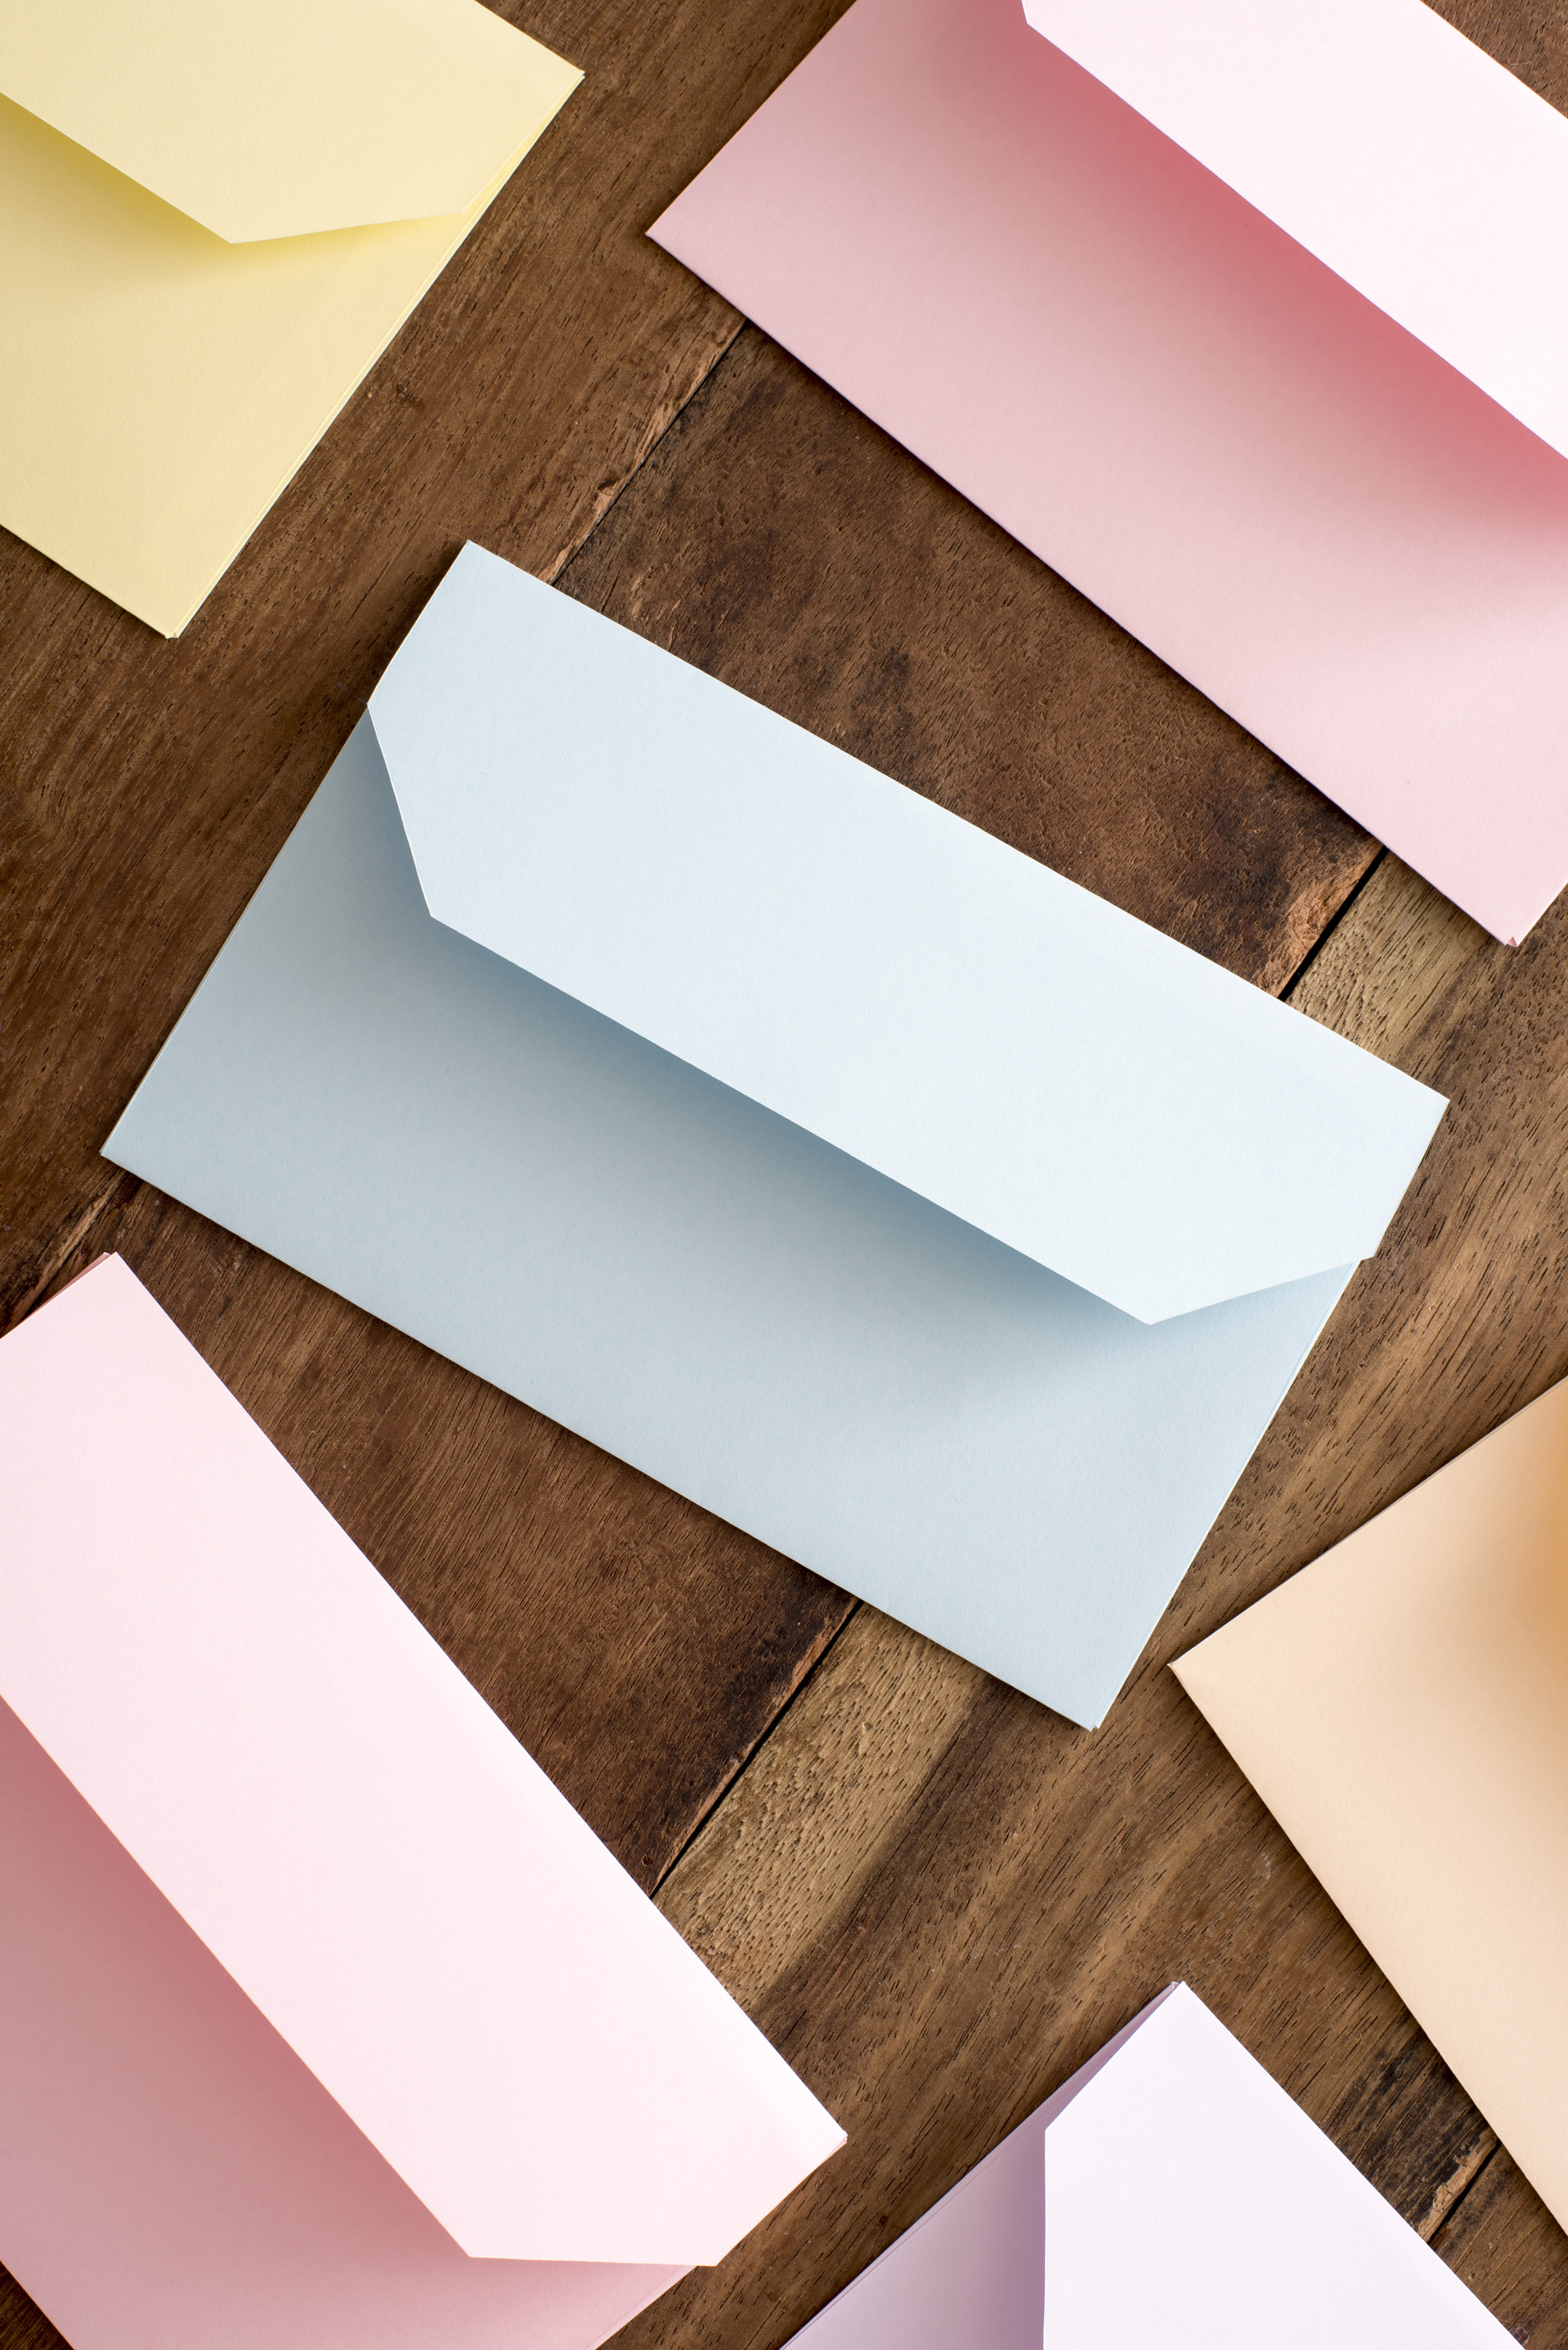 easter_greeting_opened.jpg - Top view of several open pink, blue and yellow envelopes on brown wooden surface